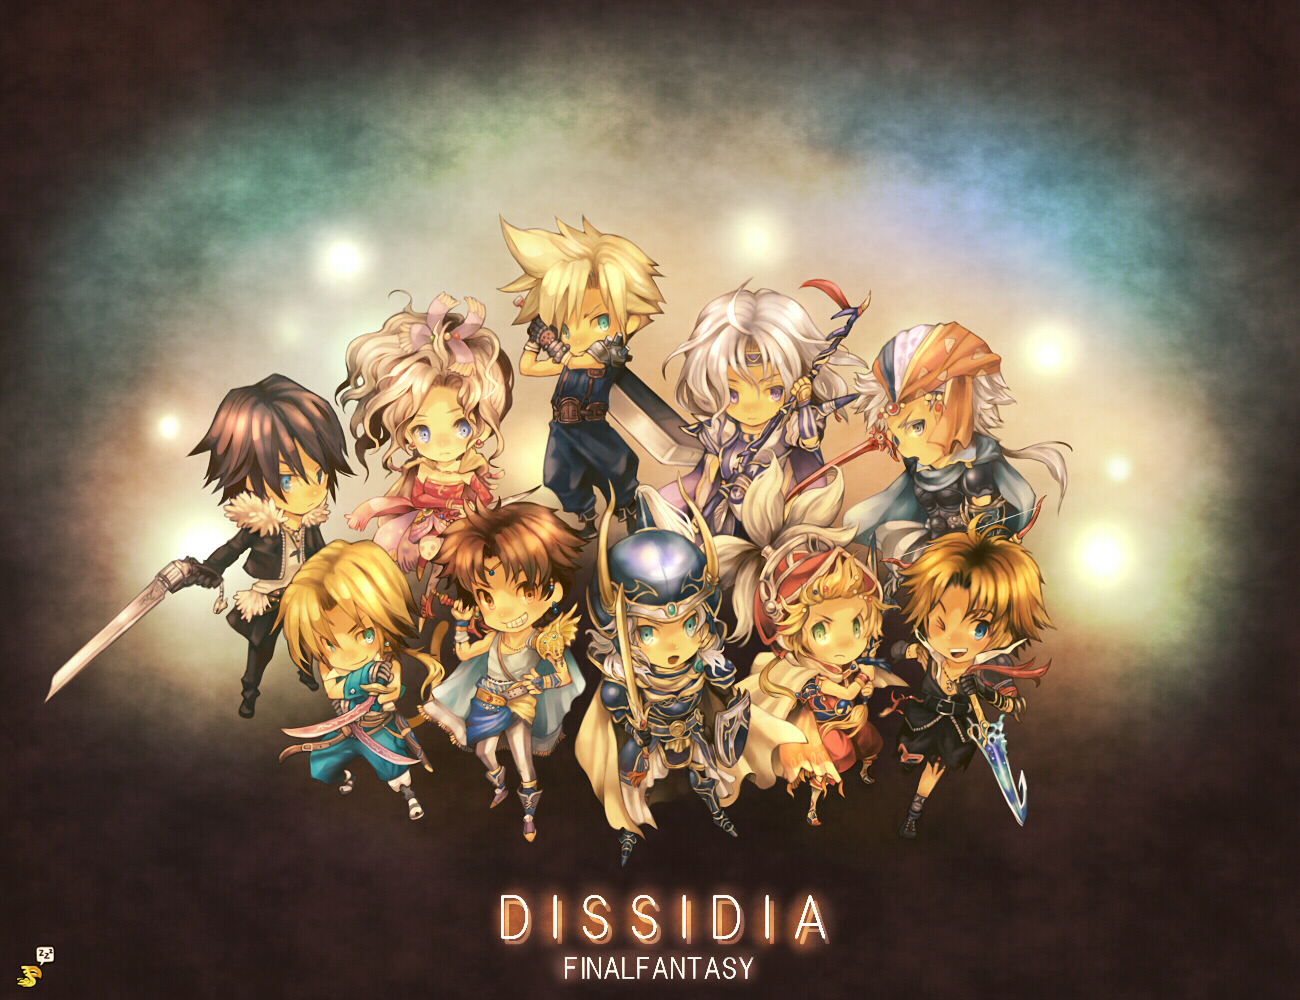 bartz_klauser cecil_harvey chibi cloud_strife dissidia_final_fantasy final_fantasy firion onion_knight squall_leonhart terra_branford tidus warrior_of_light zidane_tribal